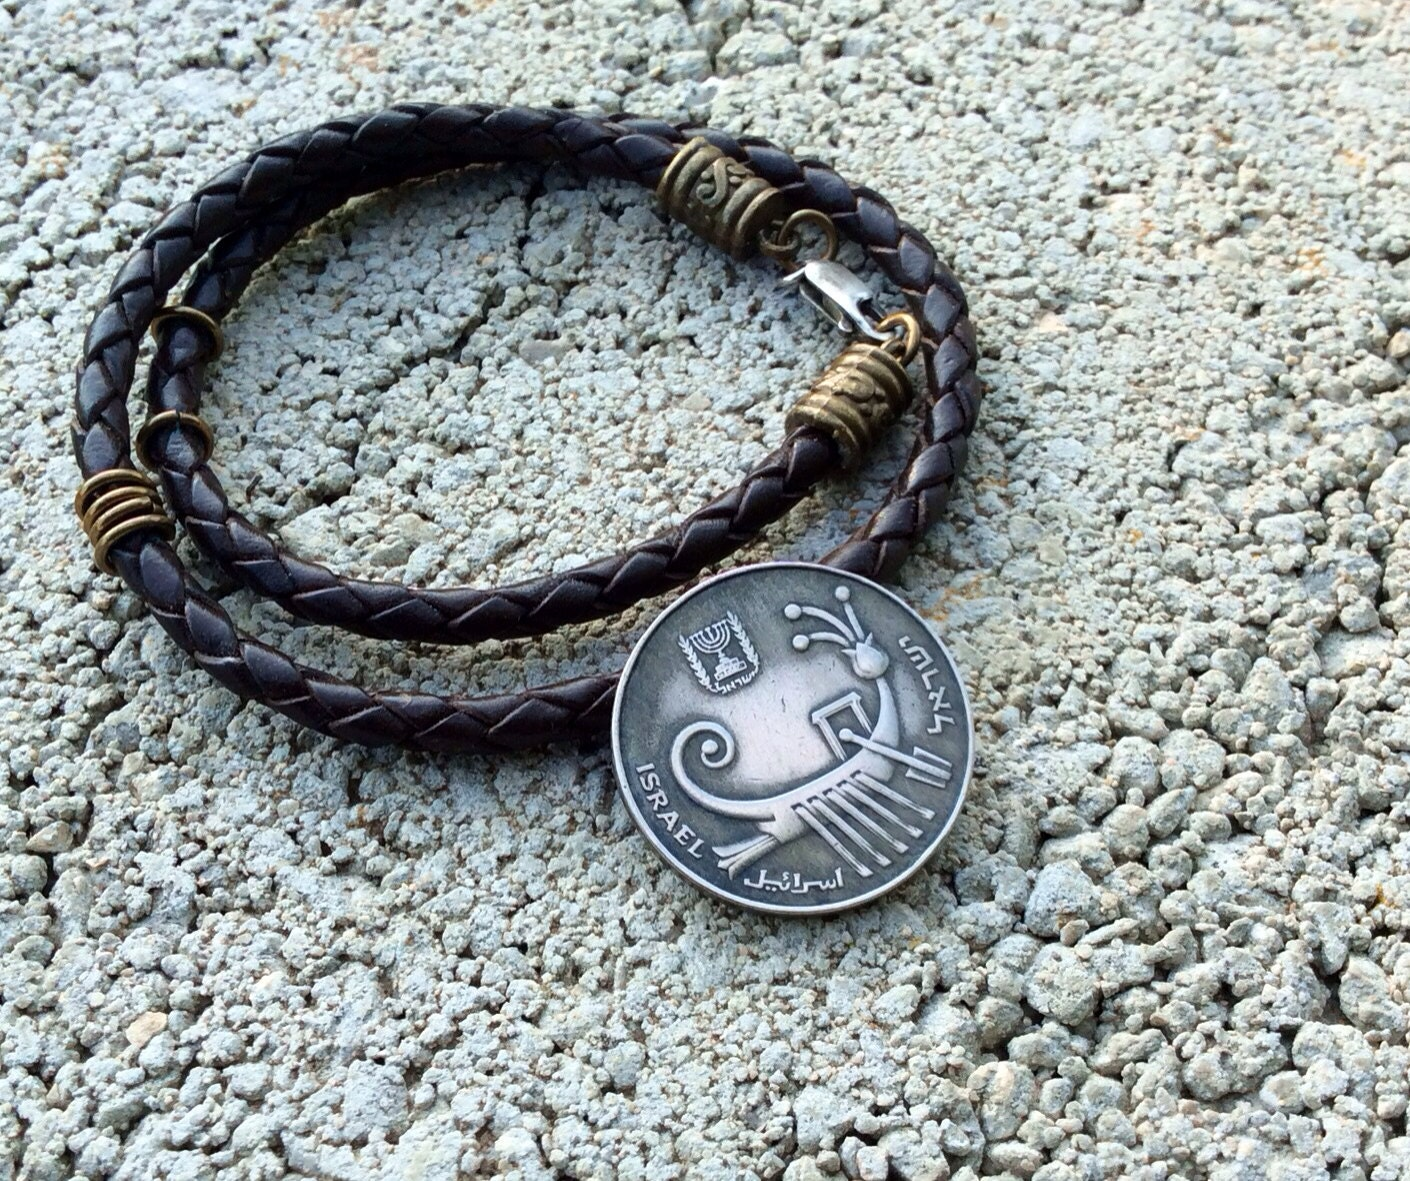 Adventure Leather Bracelet, 10 Israeli sheqel, Antique Boat, coin Jewellery, bible symbol, Jewish symbols,  one of a kind, gift ideas